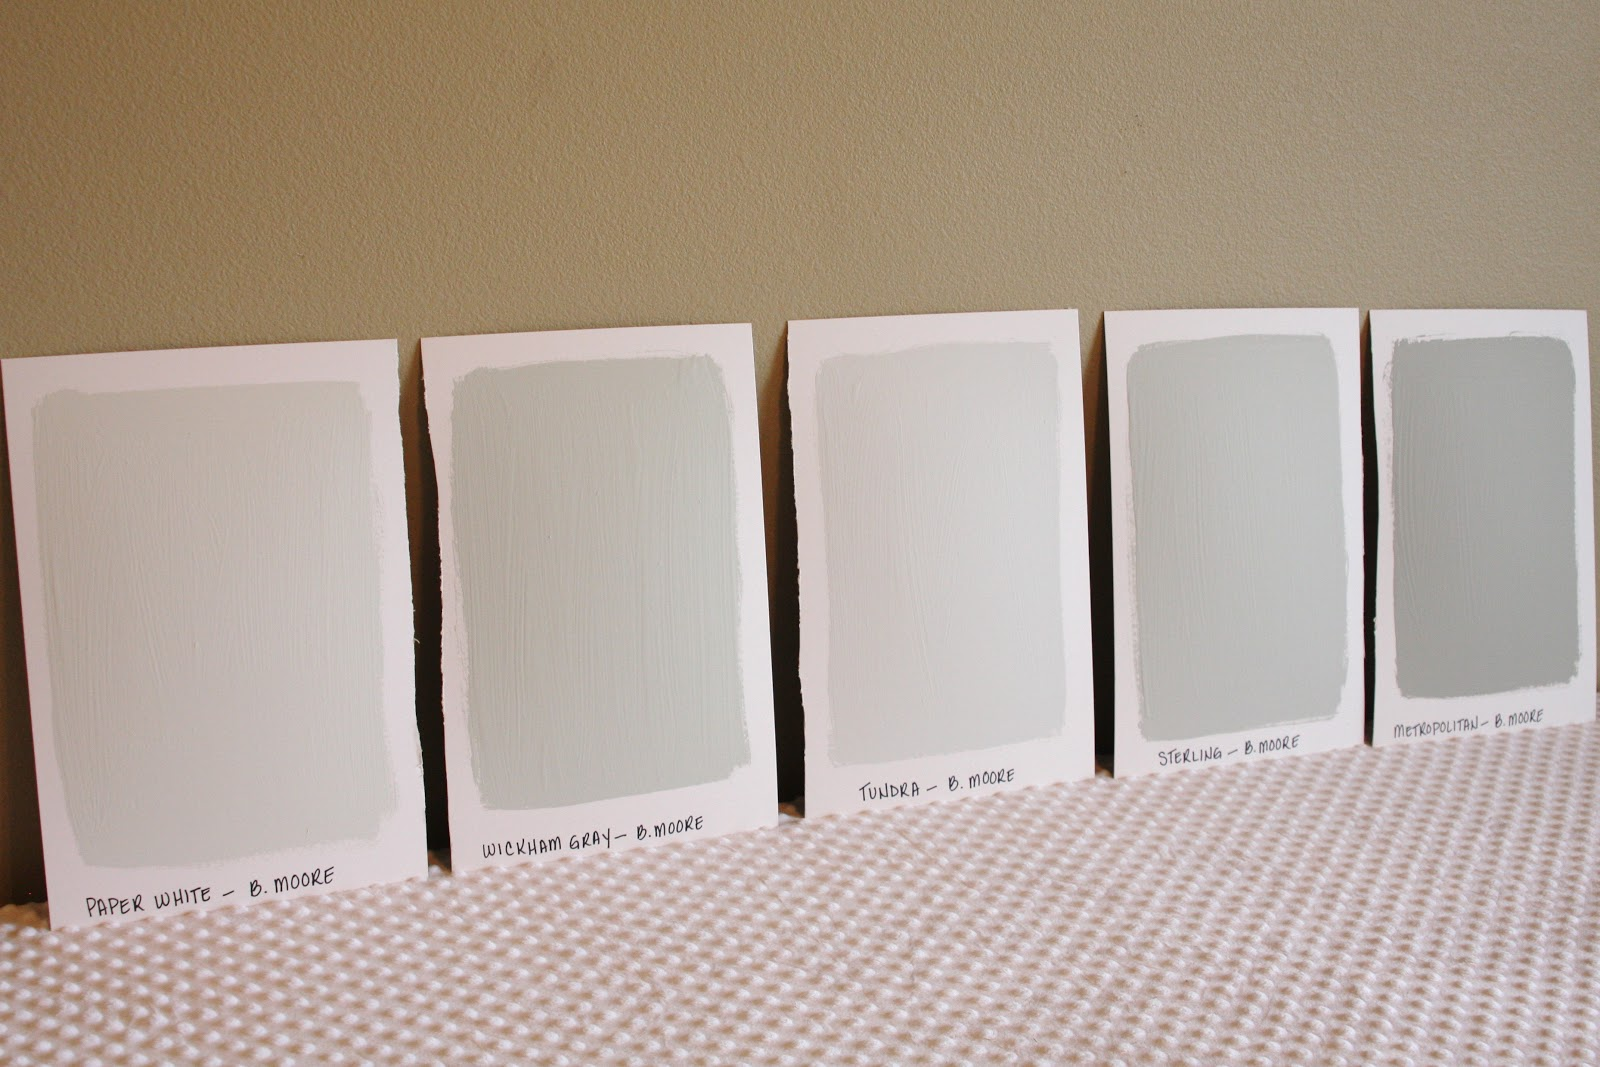 Oversized paint samples simply organized